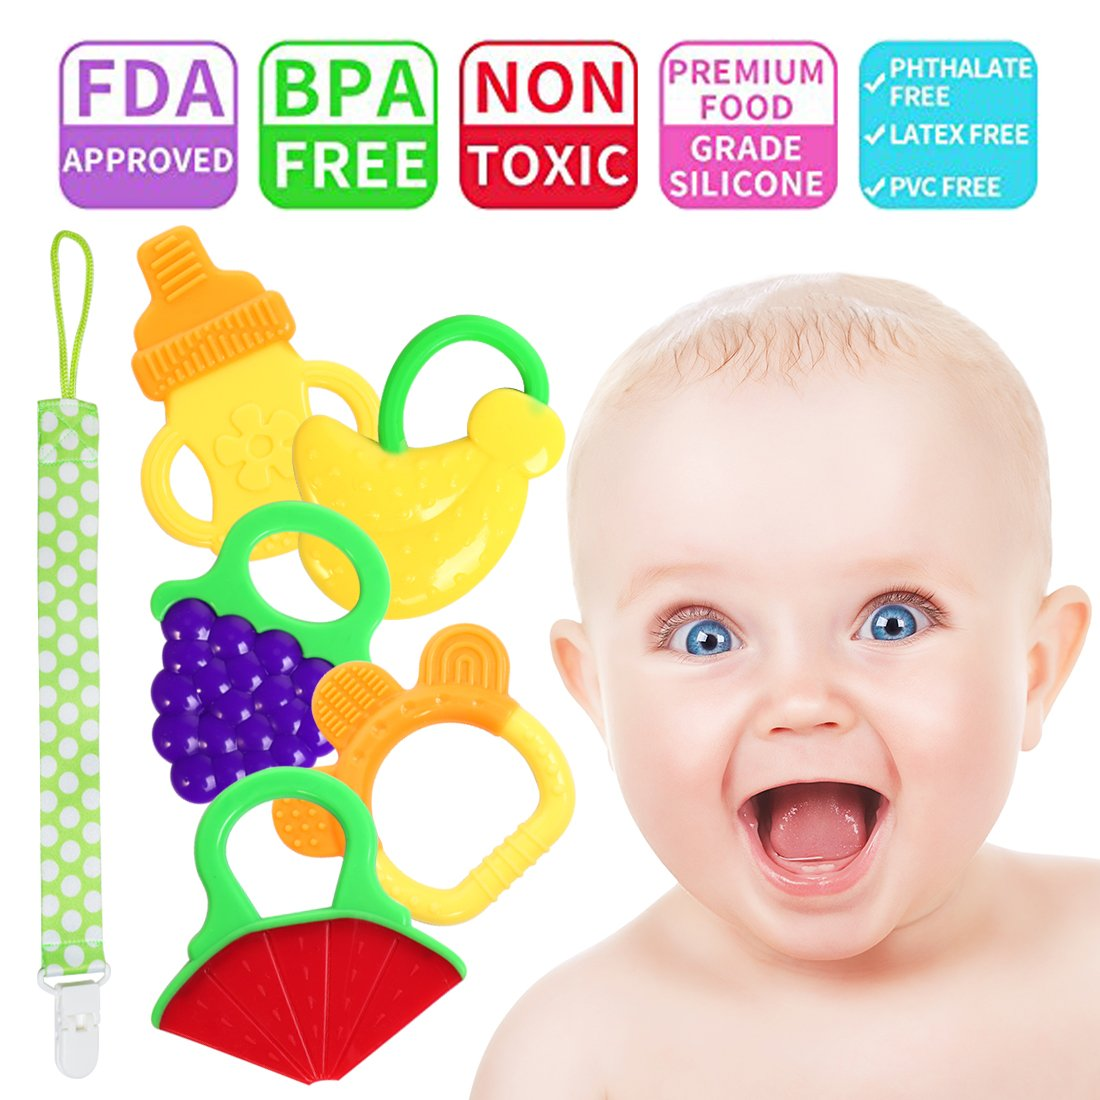 Baby Teething Toys Baby Teether- Natural Organic Silicone Freezer Teether Set BPA Free Fruit Teether Toys Sore Gums Pain Relief for 3 to 12 Months Babies, Infants, Toddlers,Baby Bib ¡